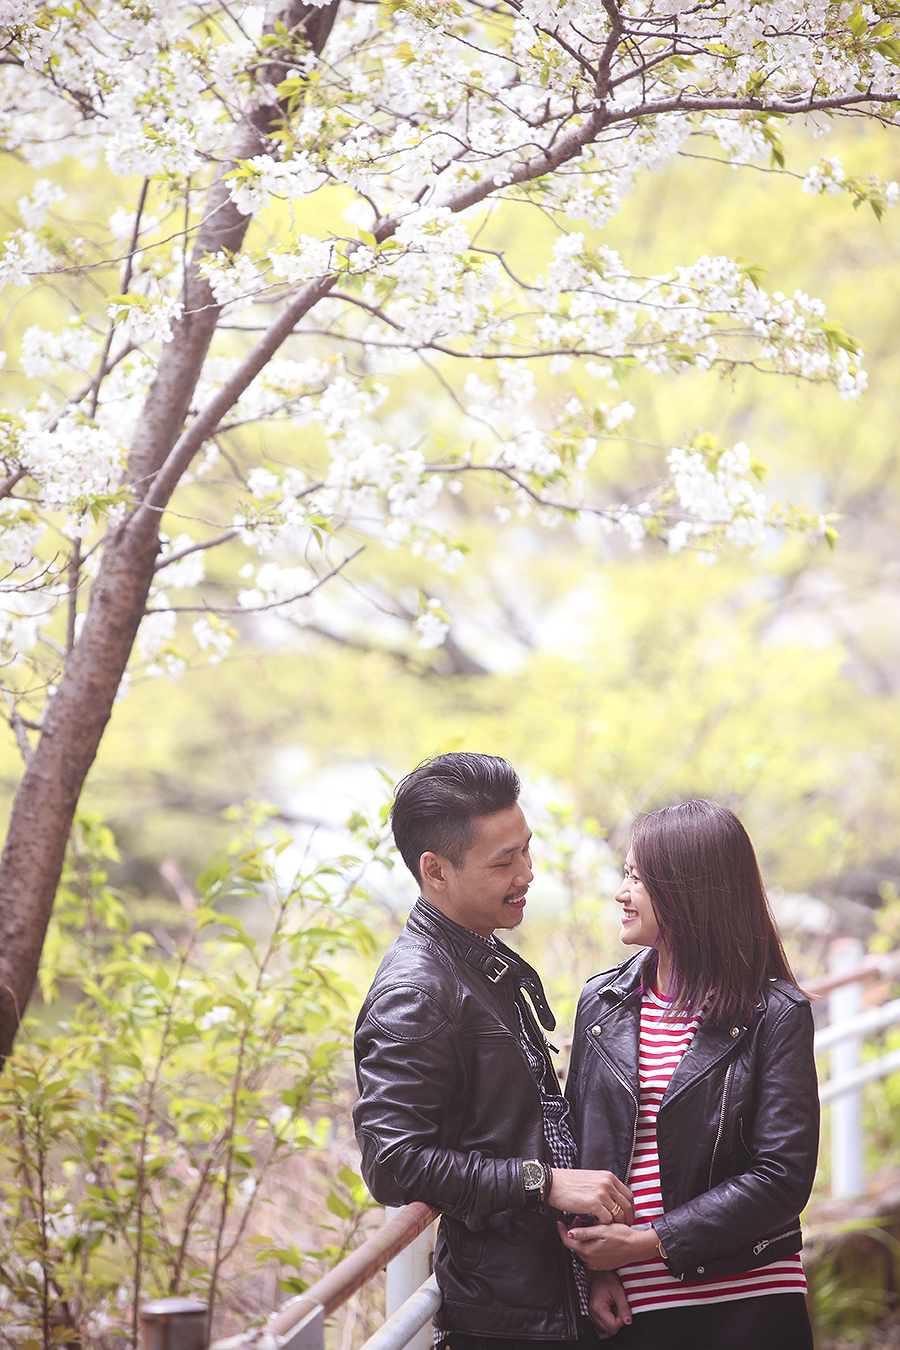 tokyo hakone japan spring sakura . engagement wedding photography by kurt ahs . ns + eu . 0363.jpg